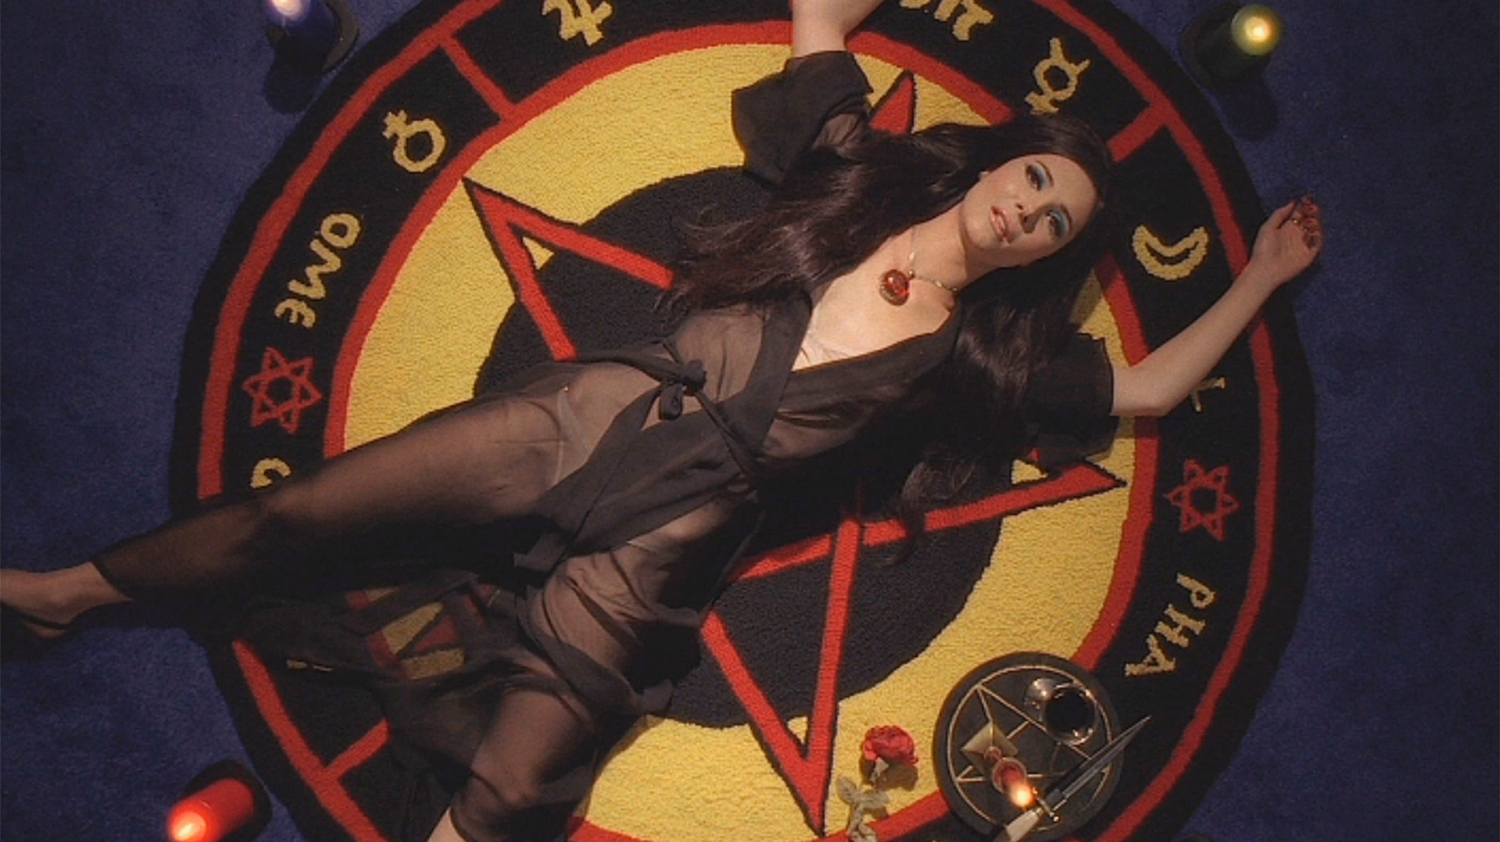 'The Love Witch': Sex magick meets pussy power in occult movie mindbender